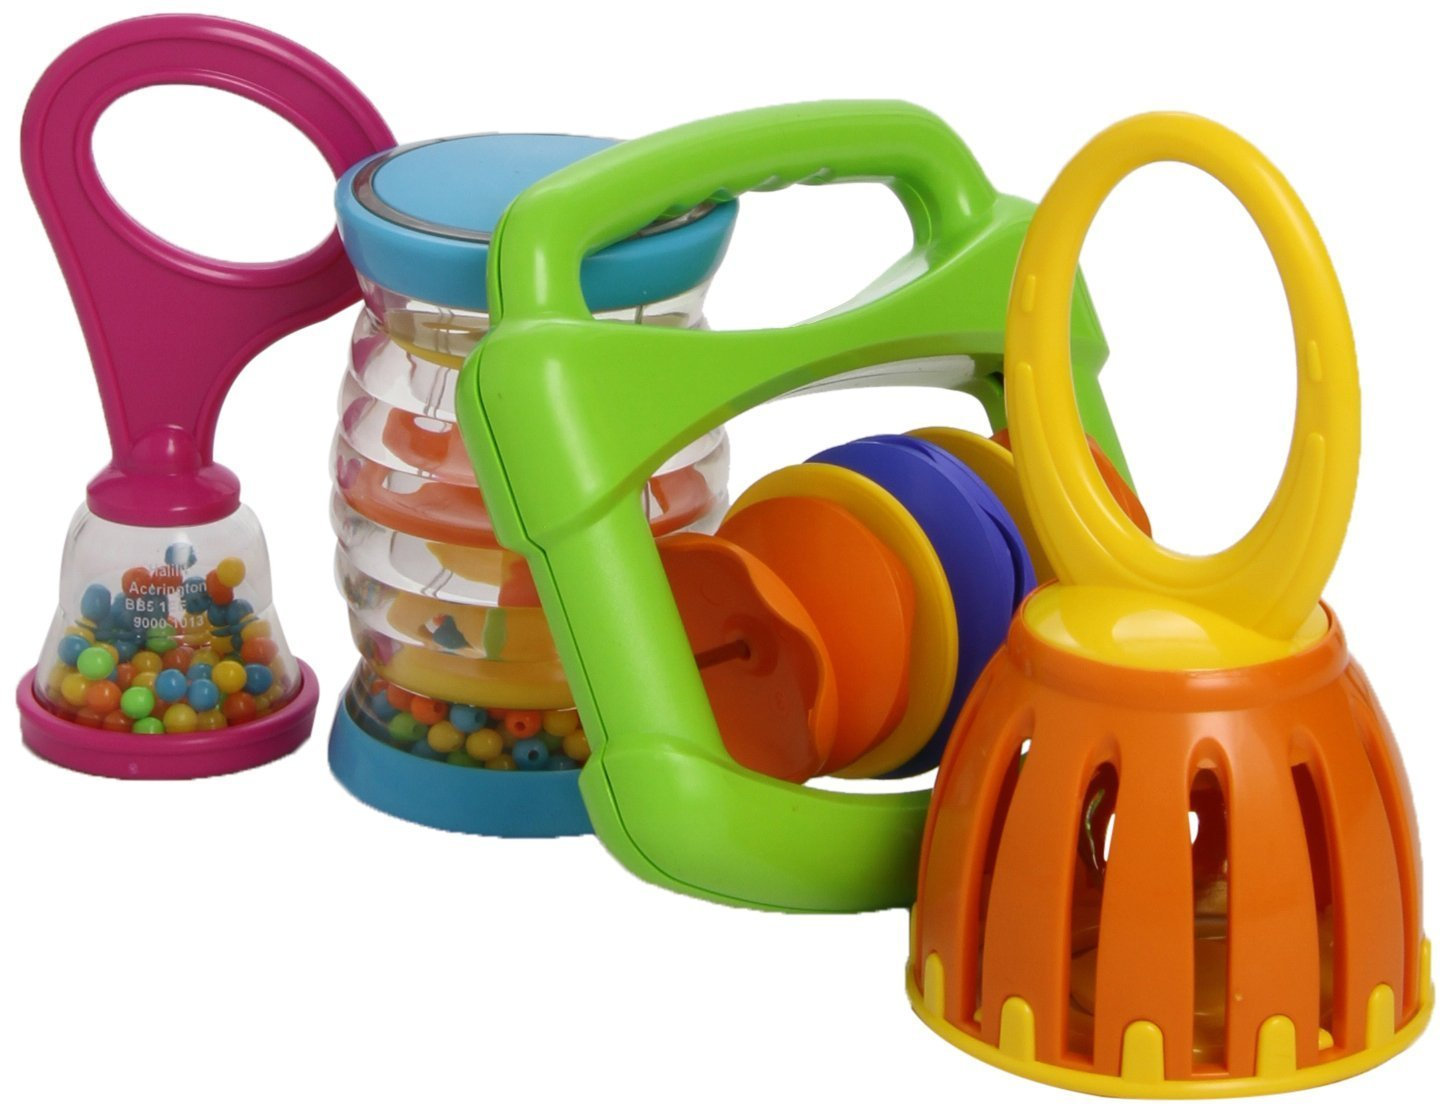 Kids Muscial Toys MS9000 Baby Band, Colors of Product May Vary (Full pack with Cage Bell)